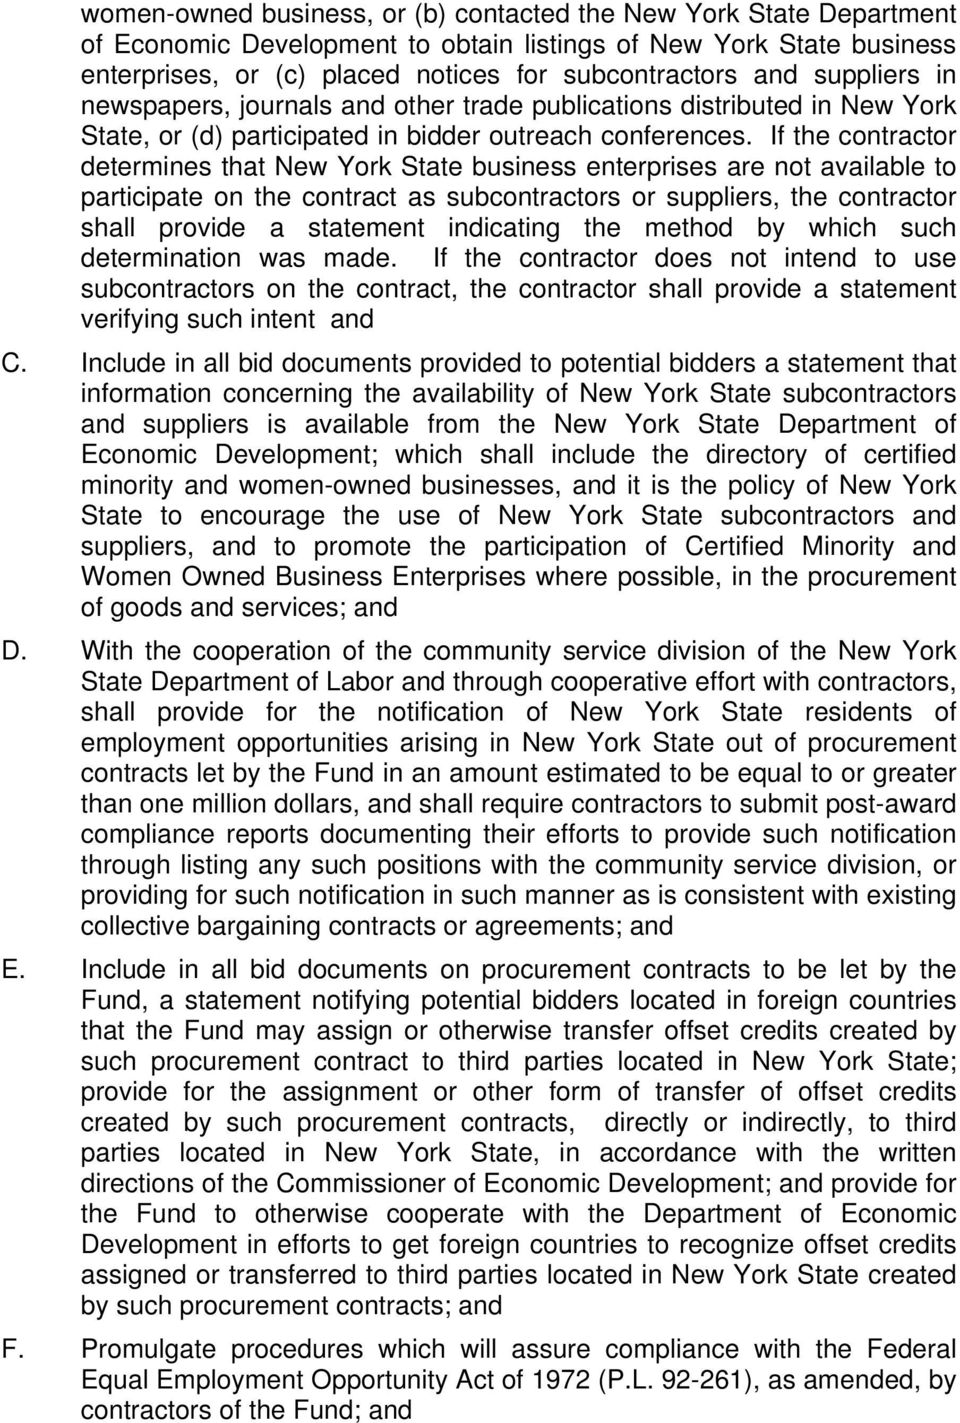 If the contractor determines that New York State business enterprises are not available to participate on the contract as subcontractors or suppliers, the contractor shall provide a statement